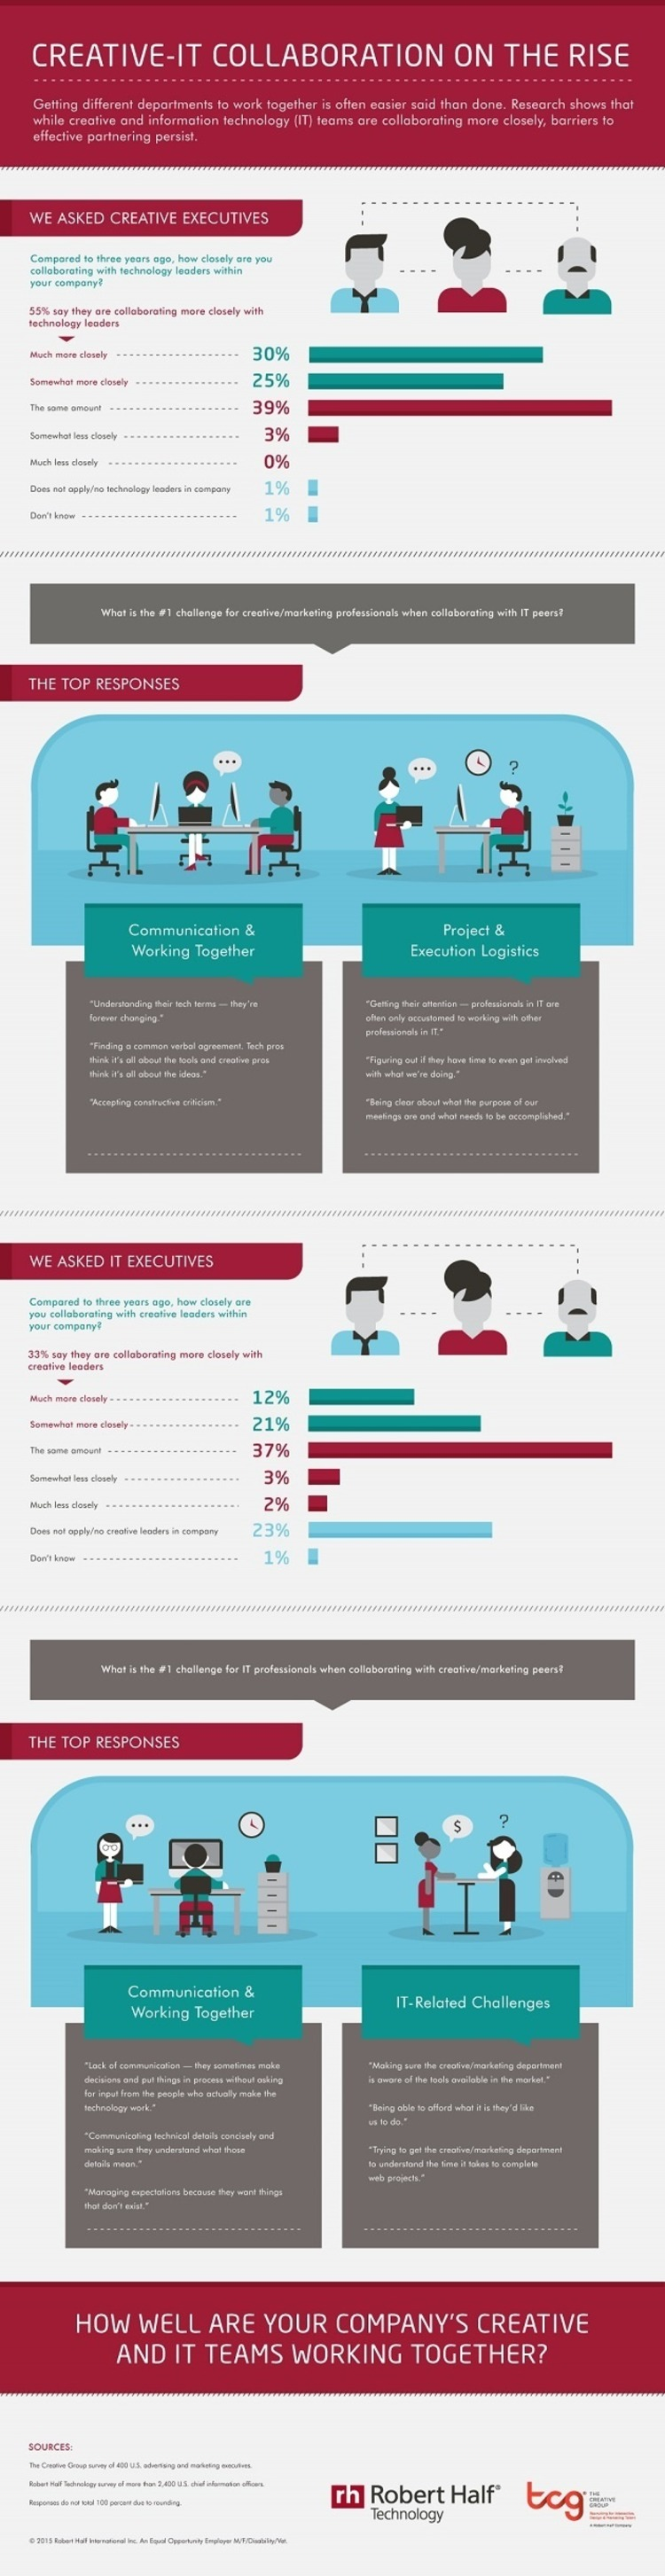 Common Challenges of Marketing-IT Collaborations [Infographic] - Profs | The Marketing Technology Alert | Scoop.it